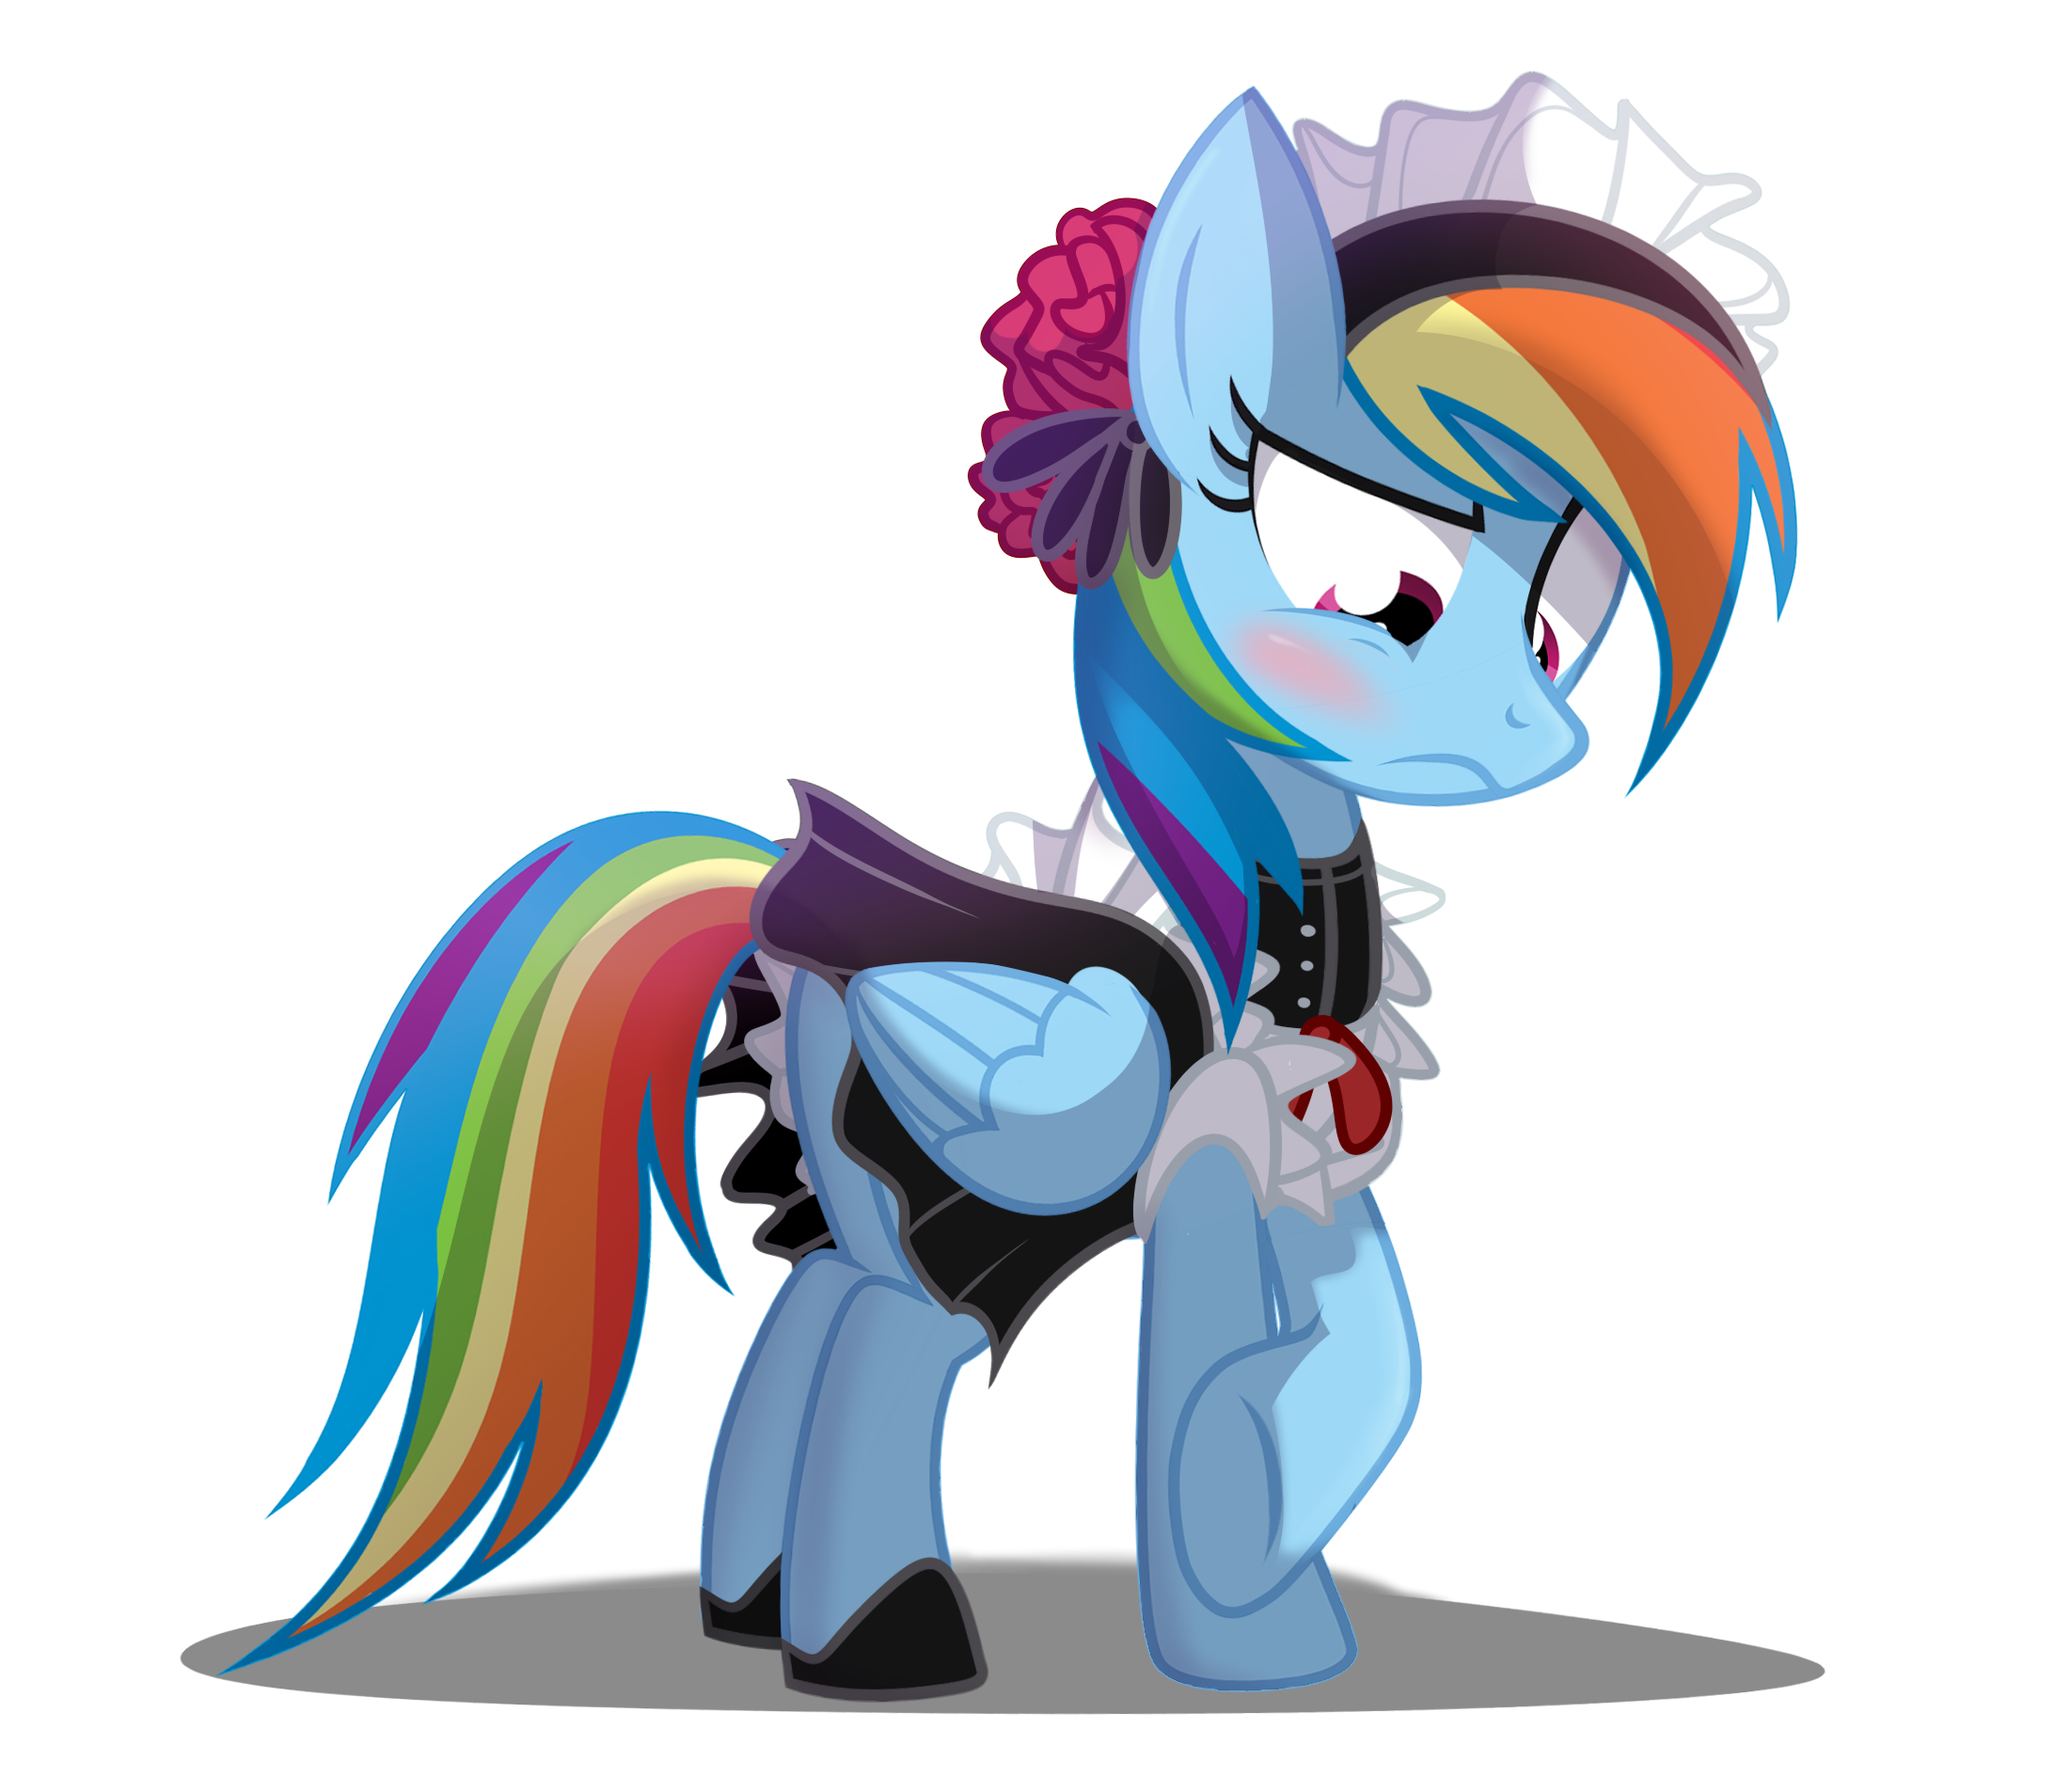 Rainbow dash in pinterest. Maid clipart maid outfit